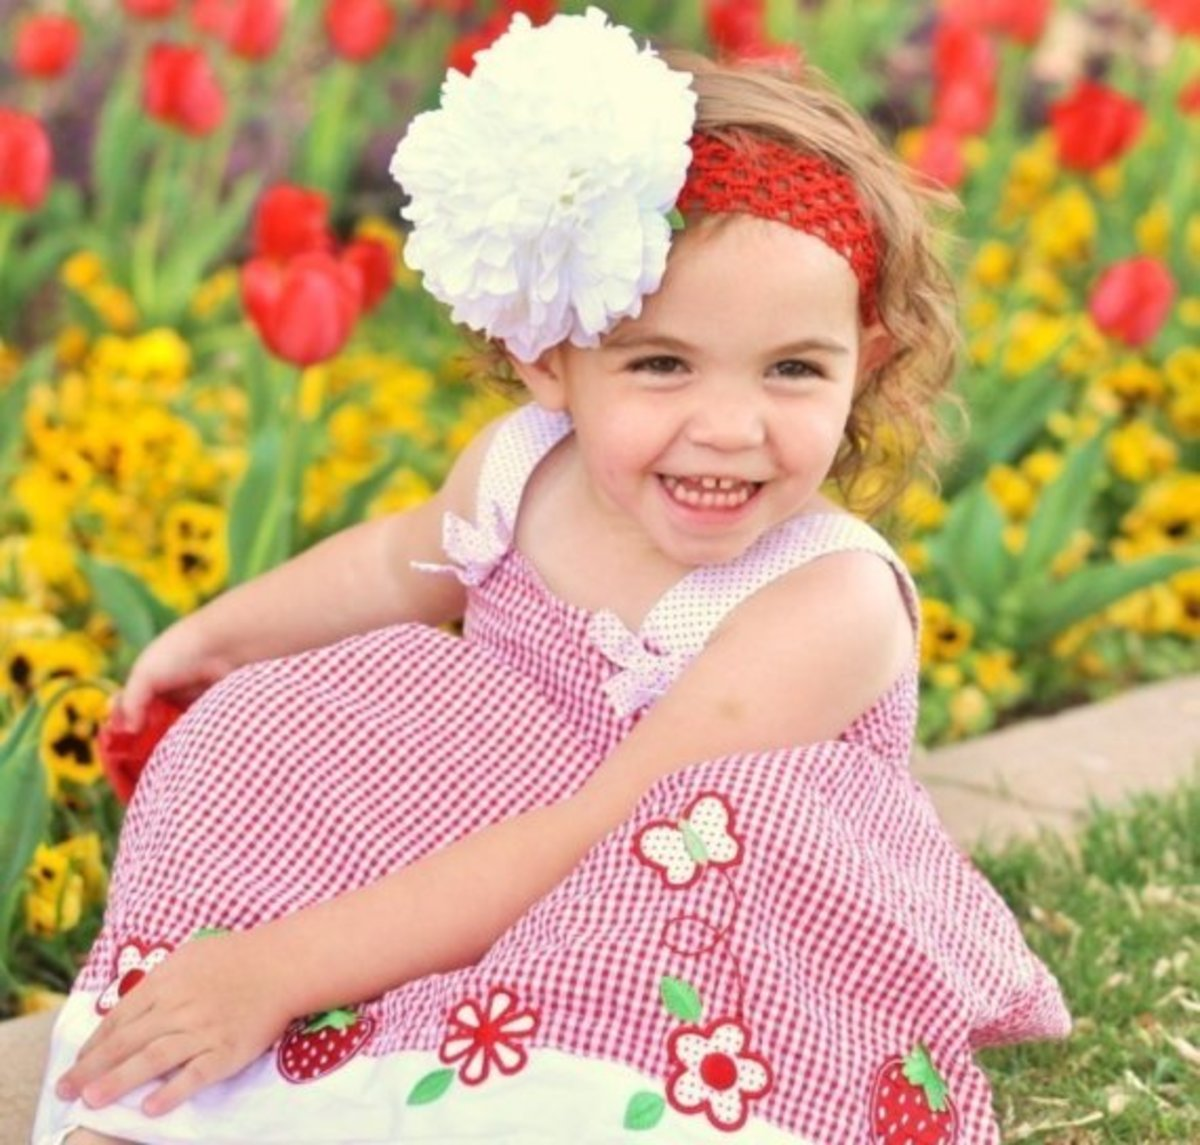 #3 Girl in Red Checked Dress Sitting Among Flowers